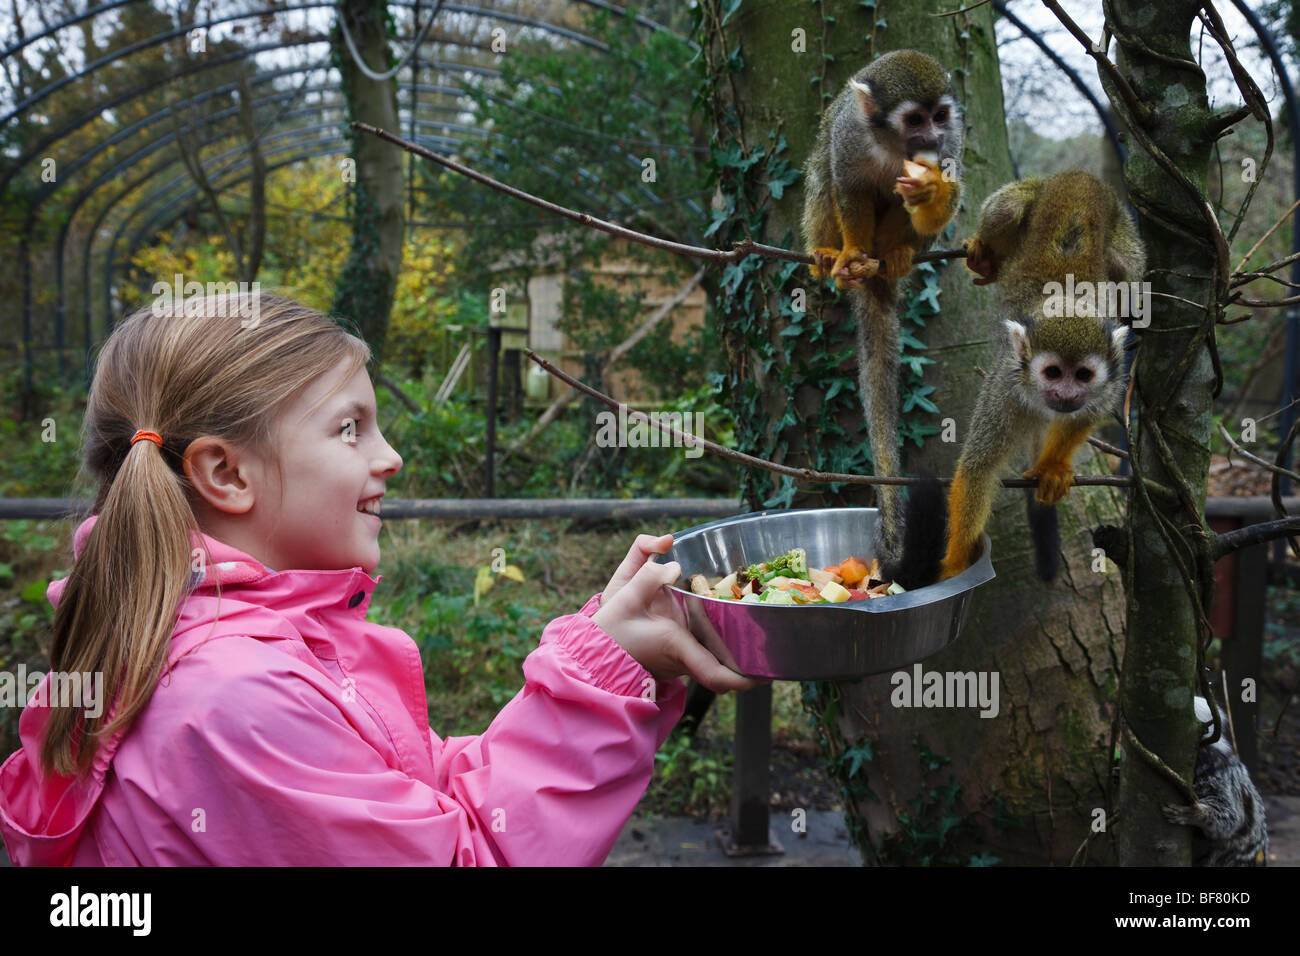 Girl feeding squirrel monkeys during her 'junior keeper for the day' experience at the Lakeland Wildlife - Stock Image